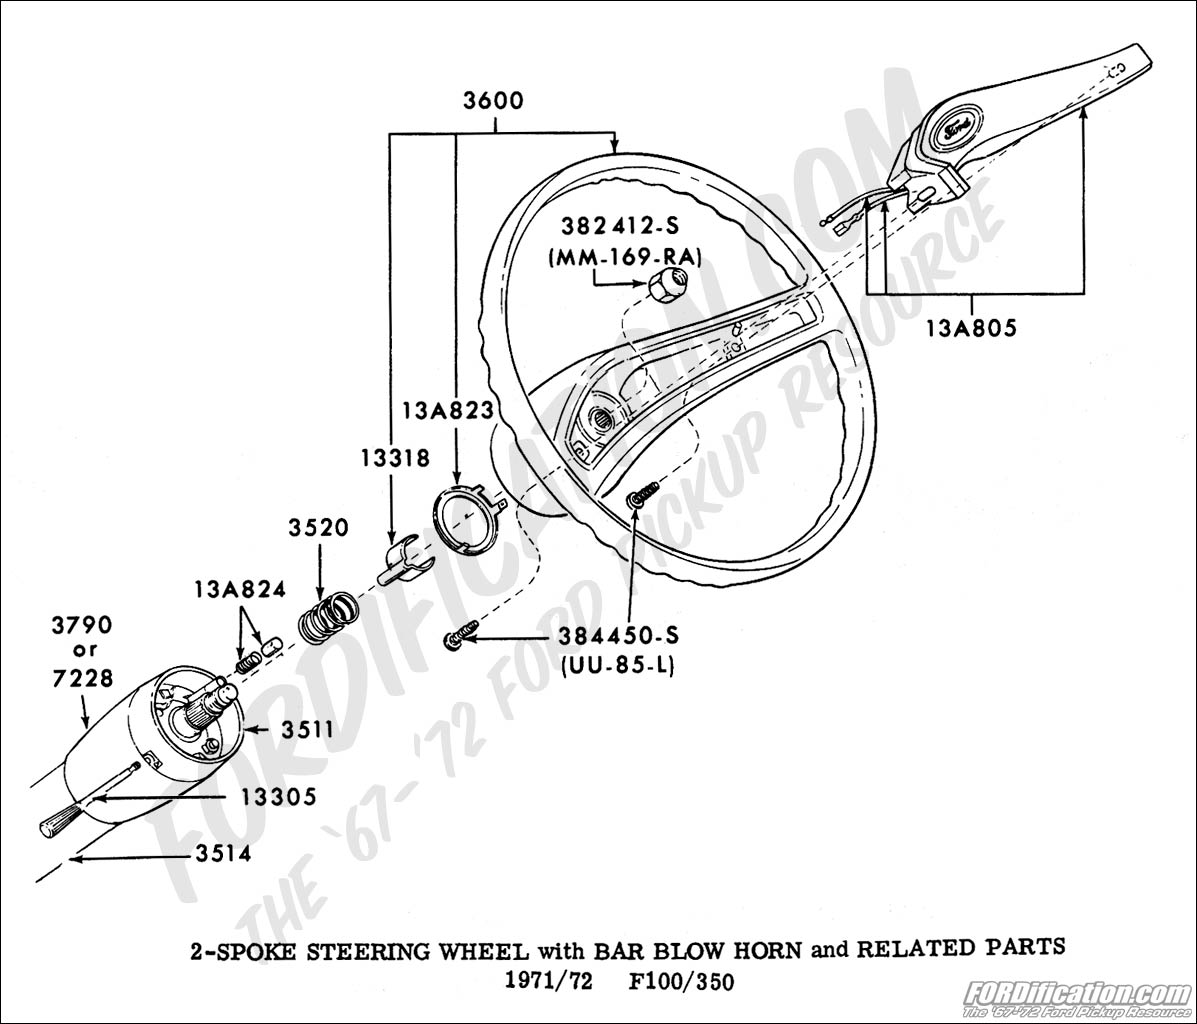 P 0900c152802514de besides 2013 Chrysler 200 Wiring Diagram likewise 2006 Subaru Tribeca Serpentine Belt Diagram likewise Fuse Box 91 Dodge Dakota additionally Subaru Legacy Turn Signal Wiring Diagram. on dodge dynasty wiring diagram